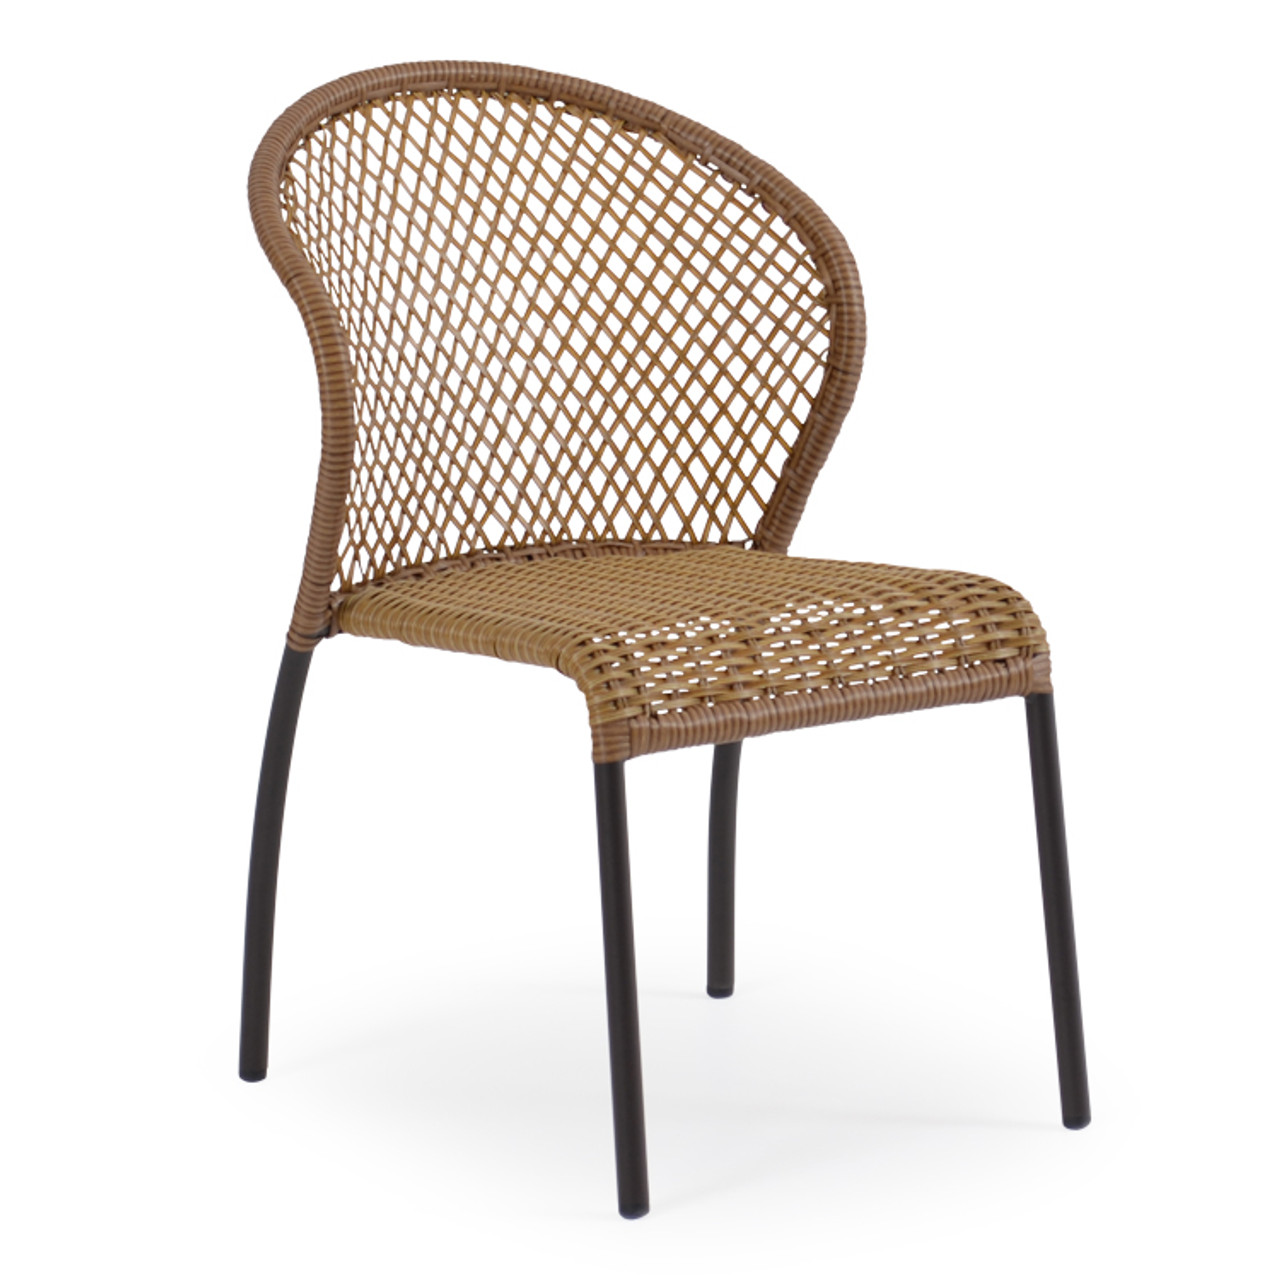 bistro chairs outdoor ikea logan chair covers empire wicker dining cork leaders casual